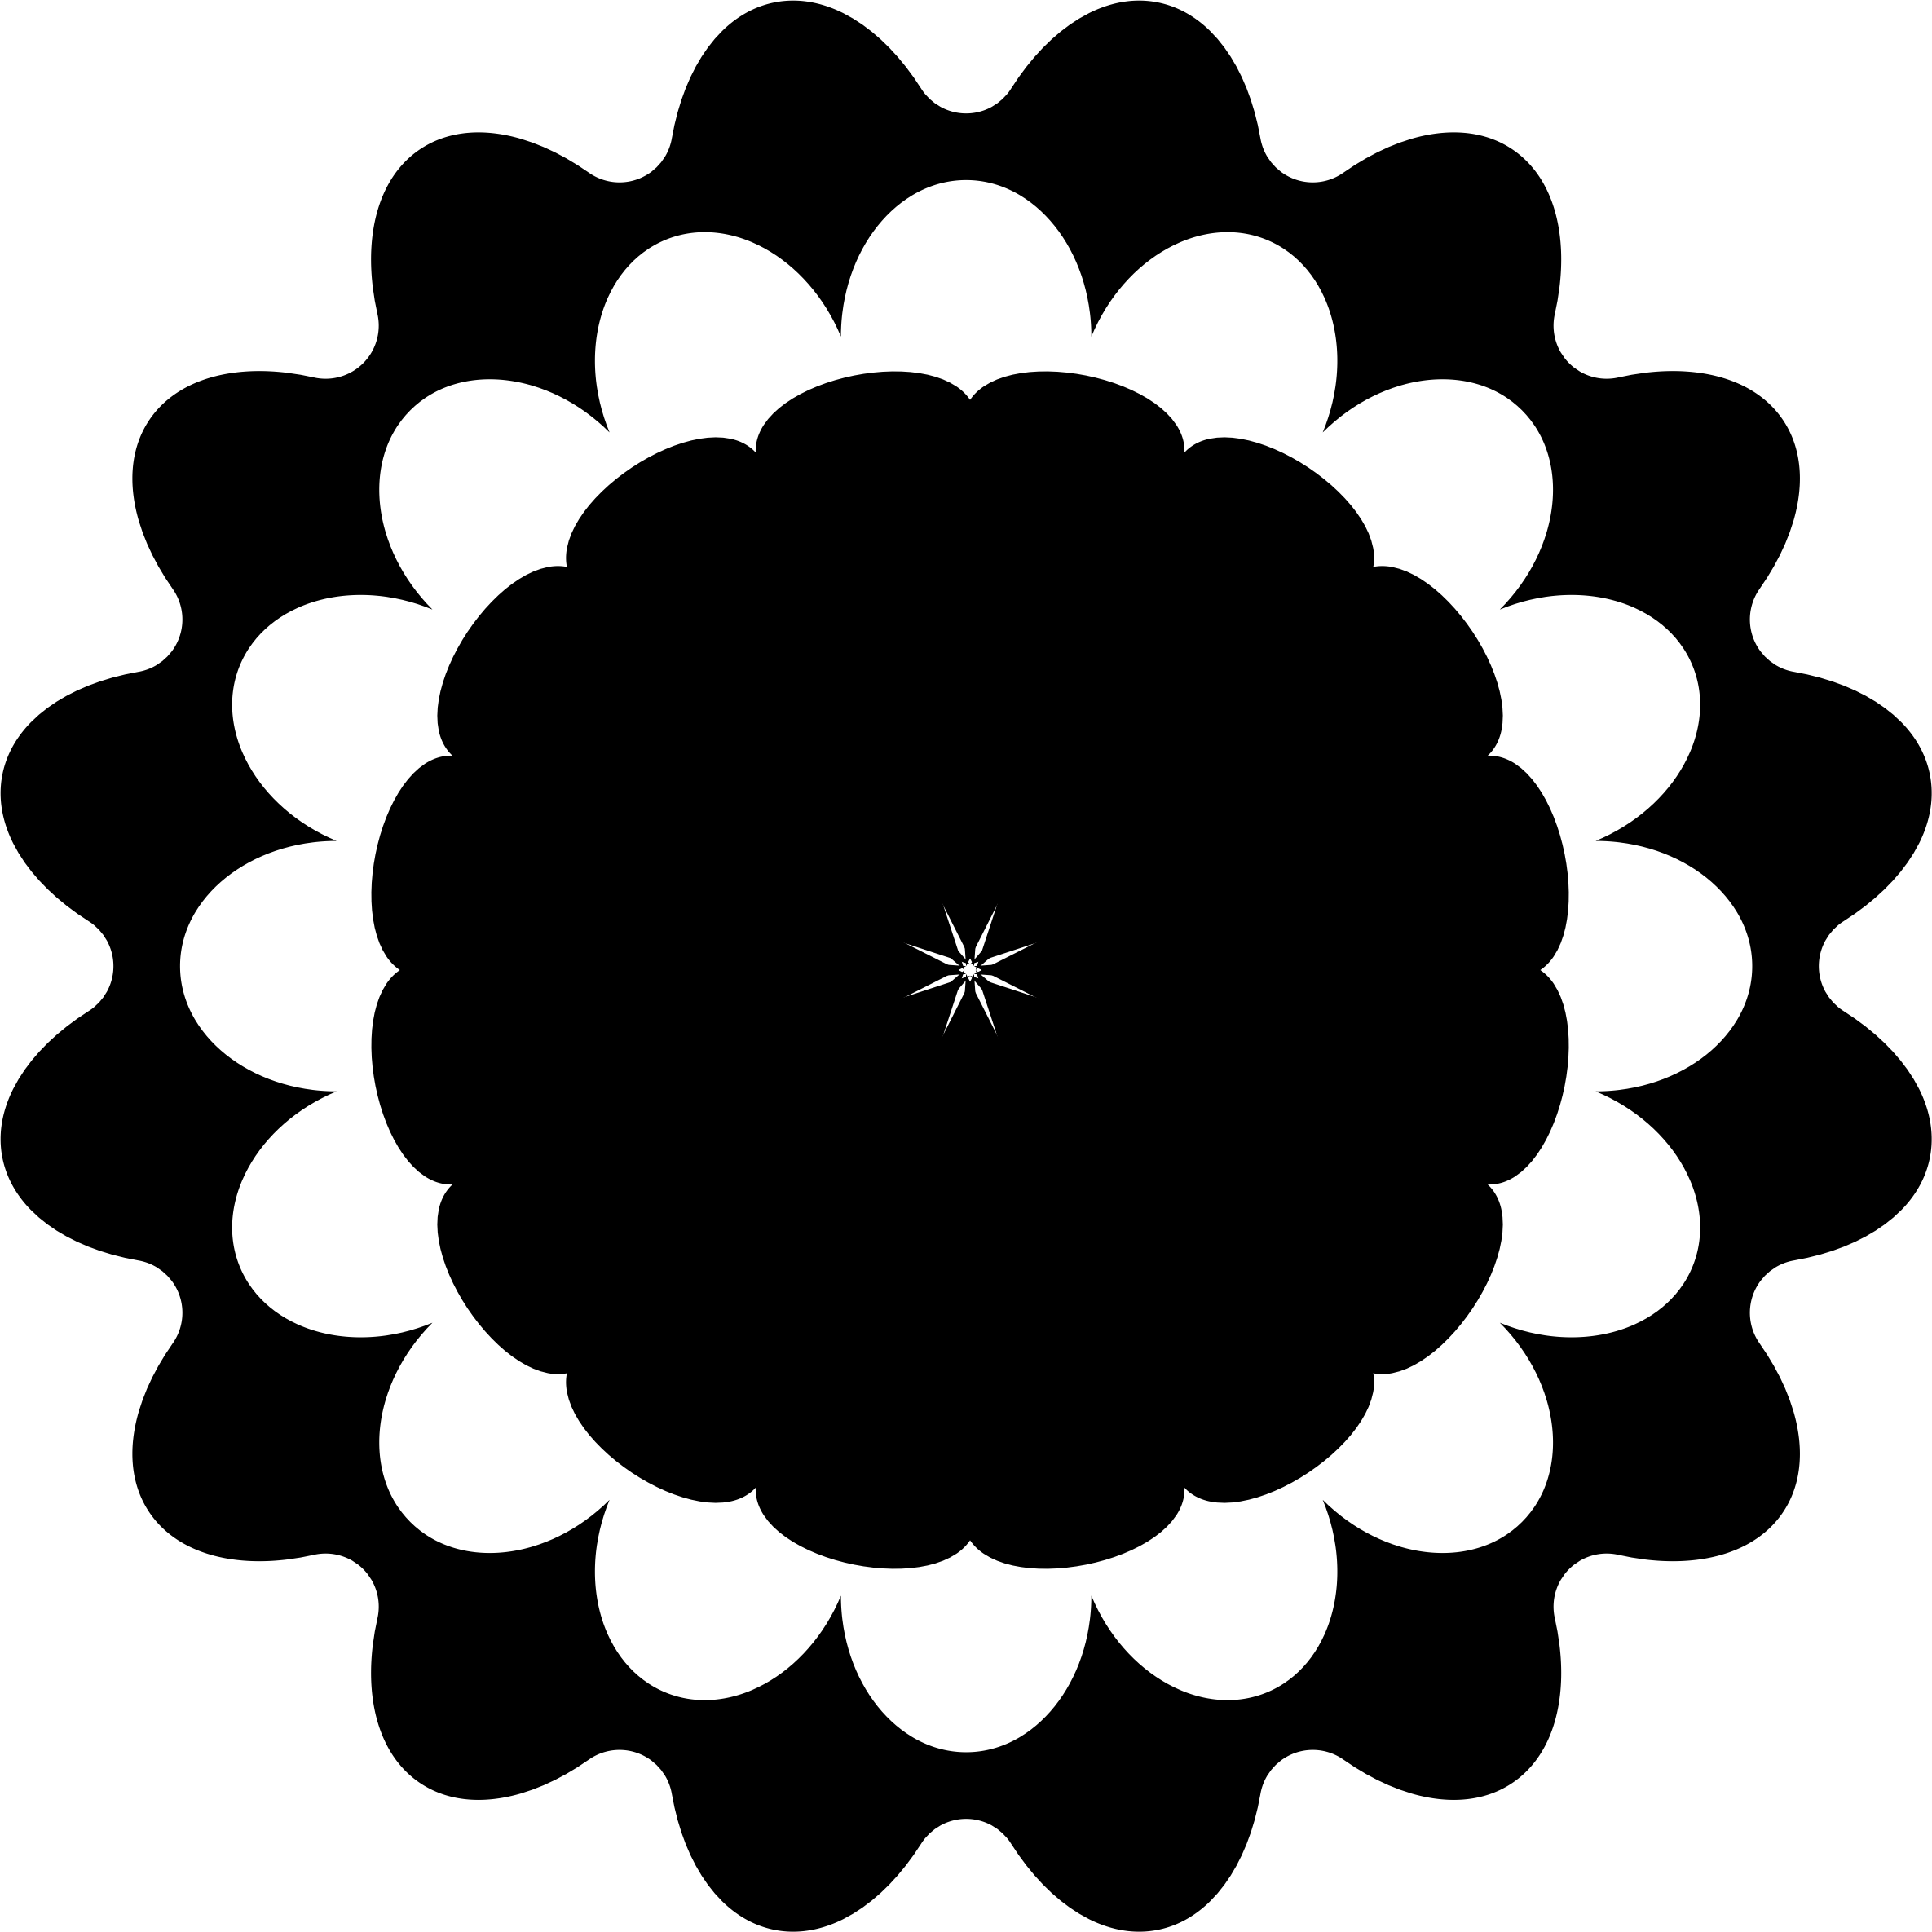 Flower Icon - Black and White by AdamStanislav